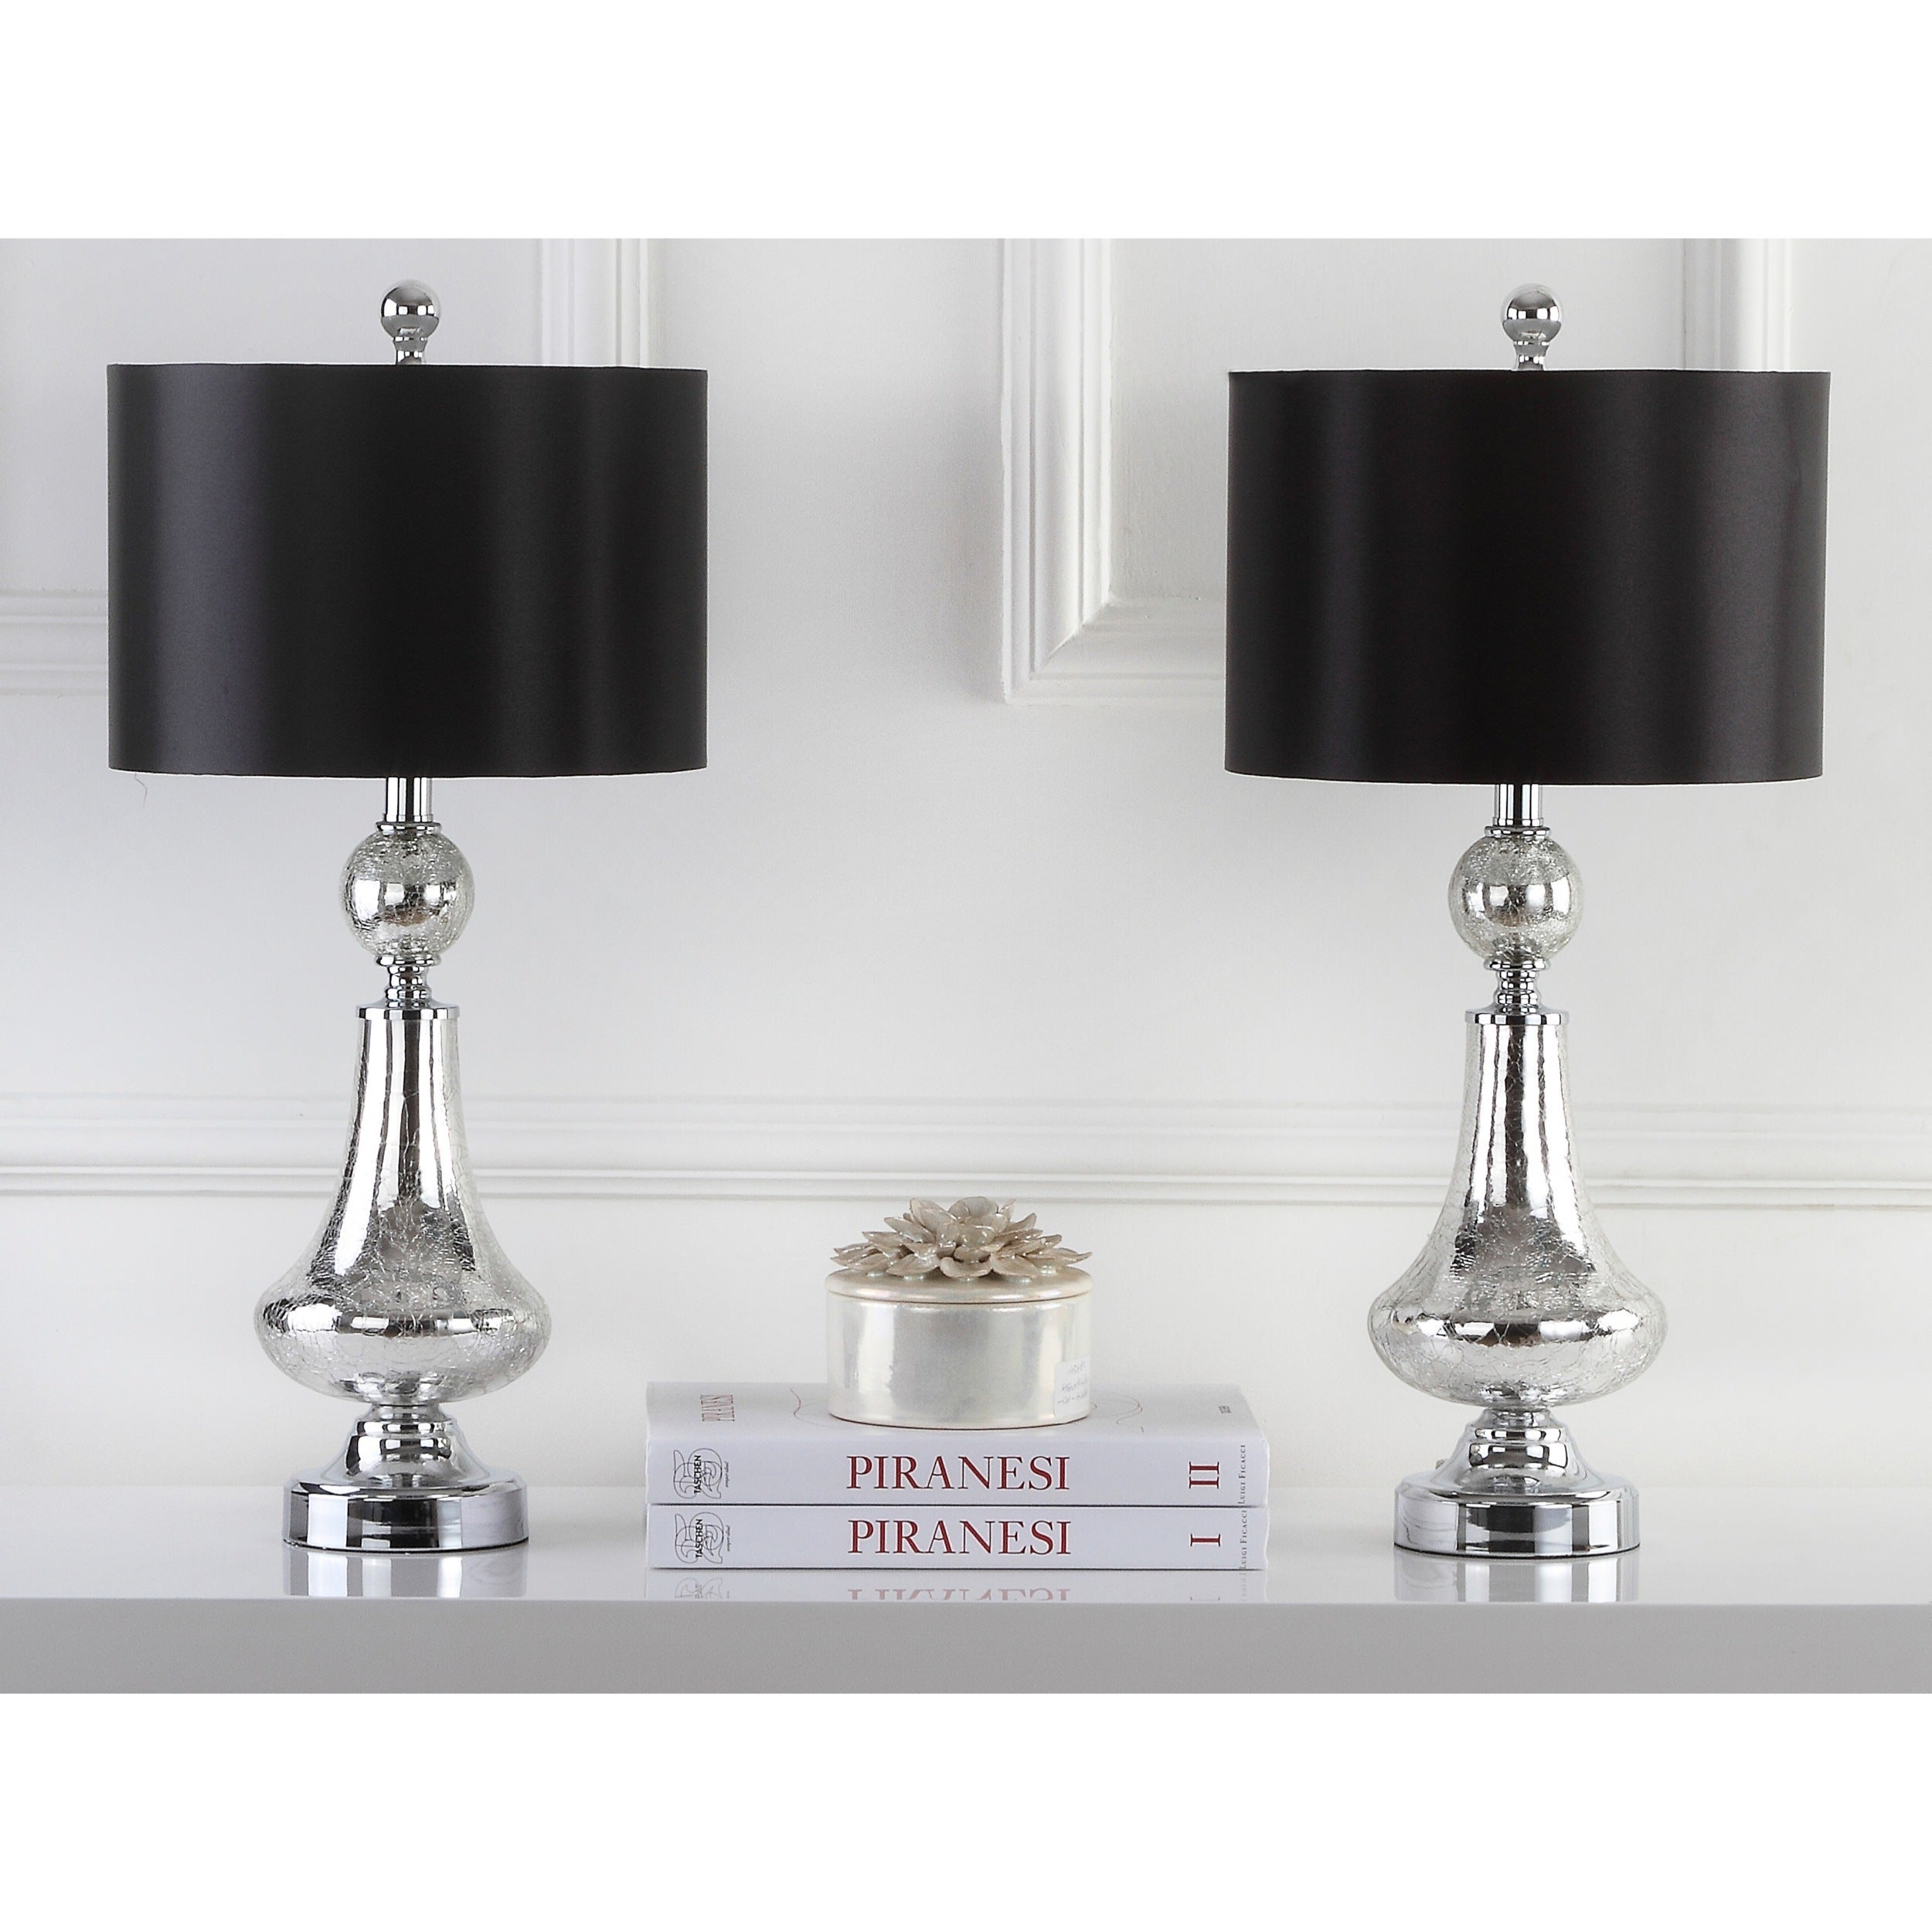 Shop safavieh lighting mercury crackle glass and silver chrome 255 shop safavieh lighting mercury crackle glass and silver chrome 255 inch table lamps with black satin drum shades set of 2 on sale free shipping today aloadofball Gallery